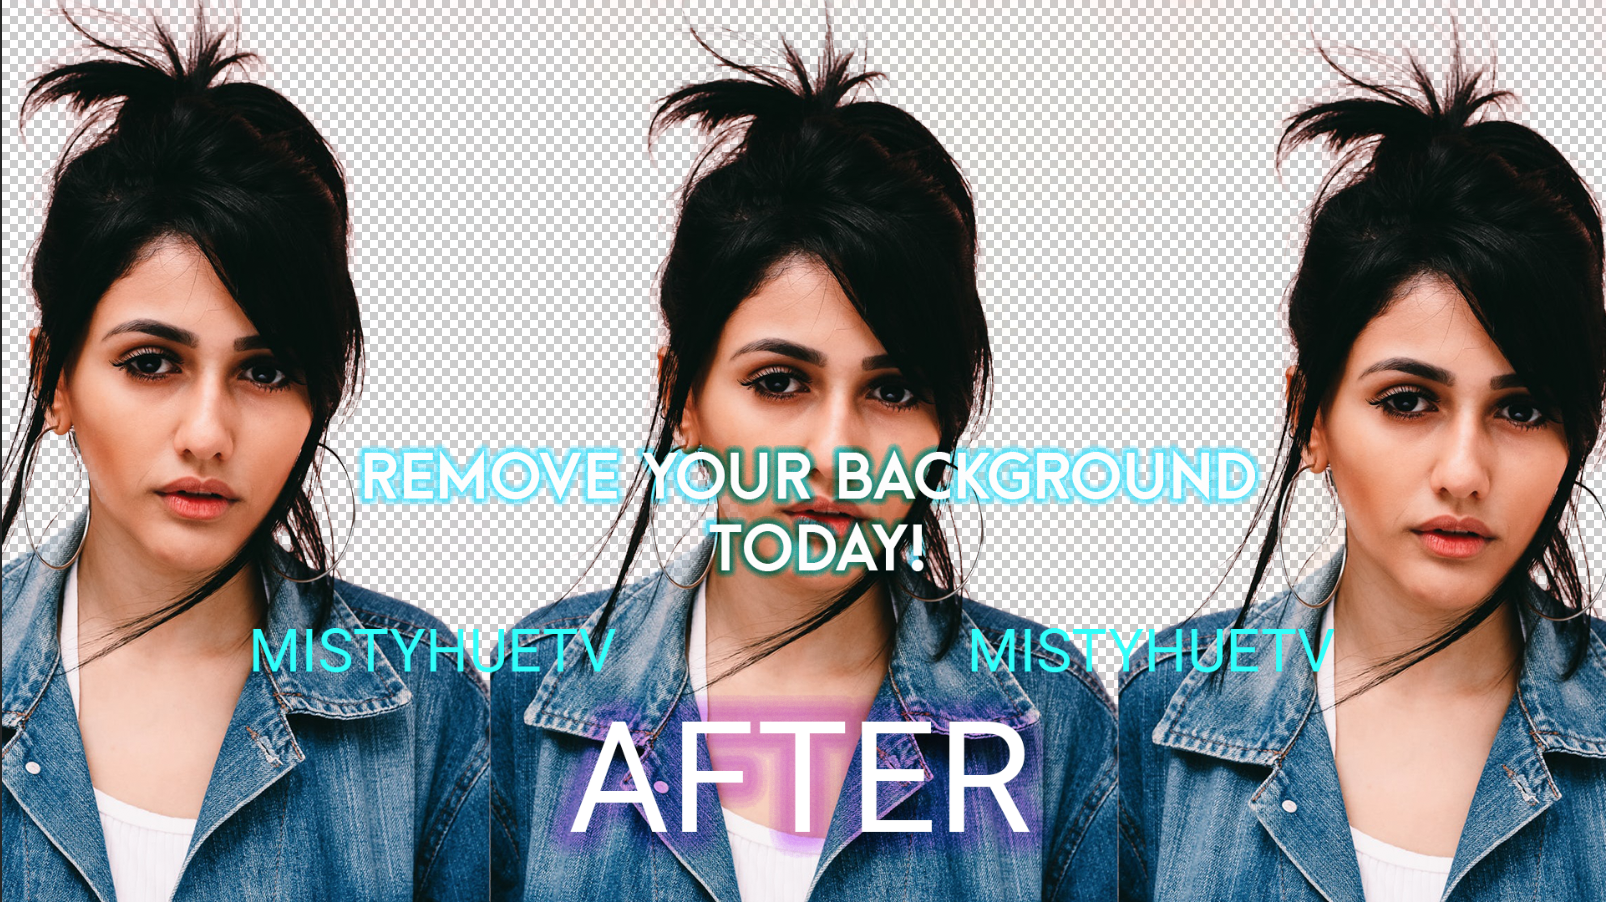 Background Removal | Photo Editing Services for your Photos.